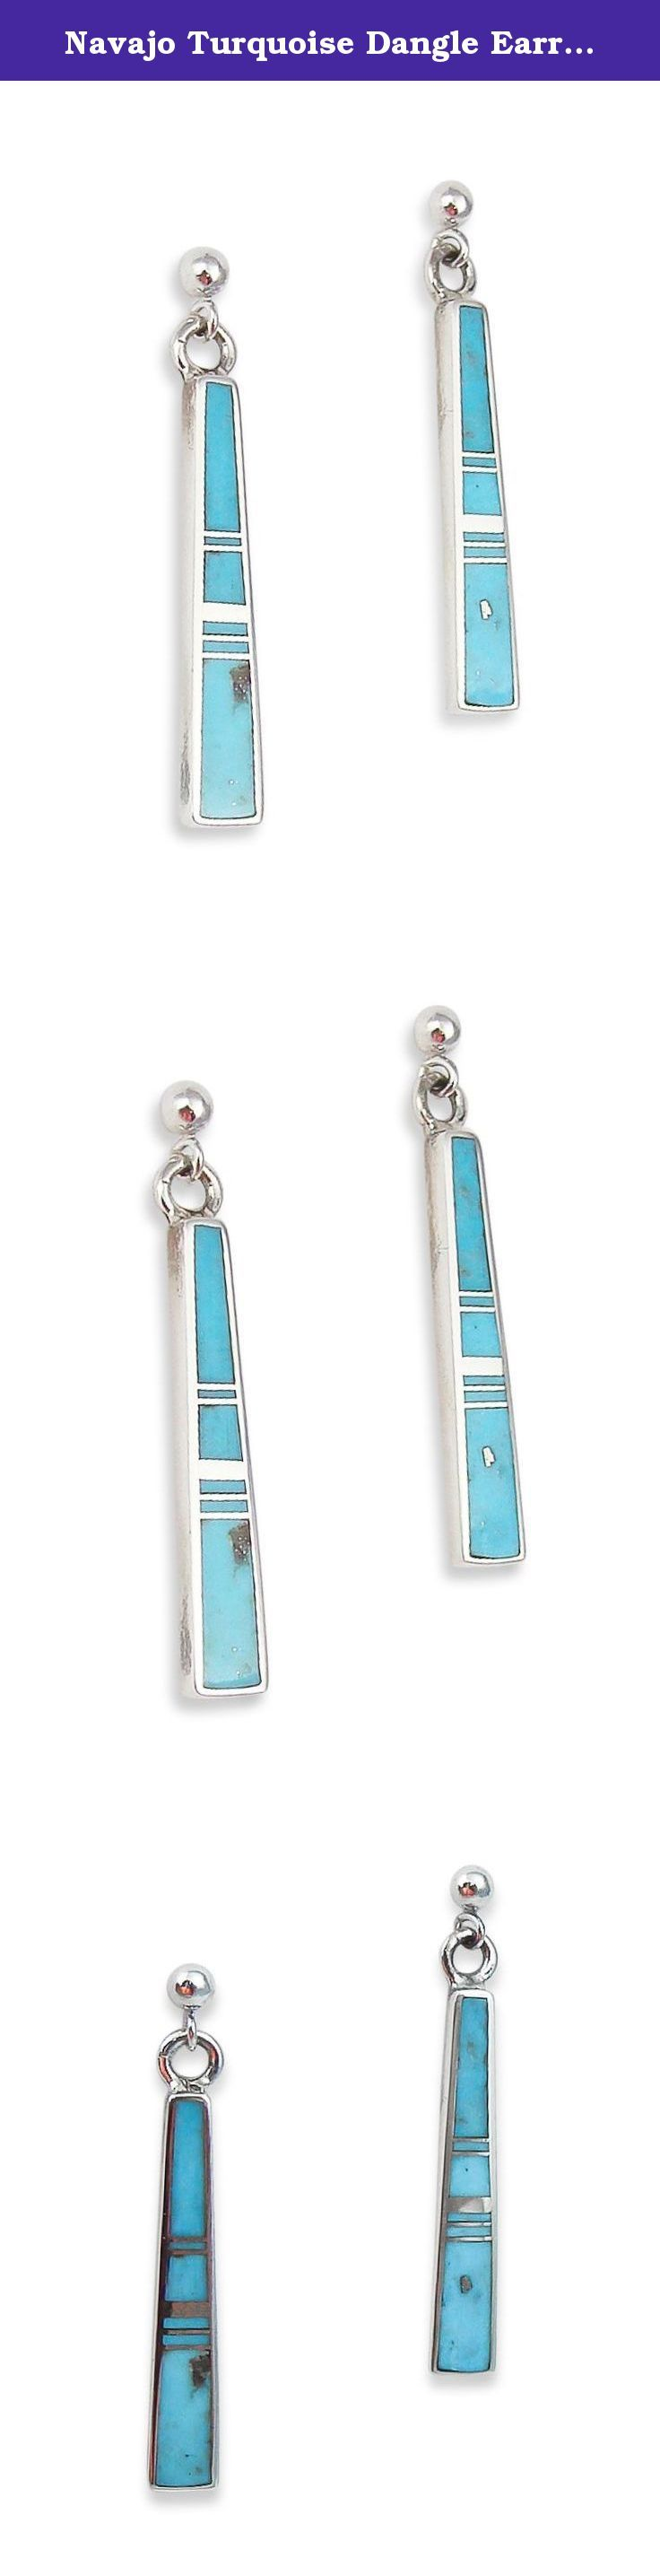 Navajo Turquoise Dangle Earrings Rick Tolino. These stunning earrings are one of a kind! Made with light blue Turquoise; they will go with anything worn with them! The Turquoise is set into a geometric inlay design, perfect for dressing up any outfit. Rick Tolino is the featured lapidary artist. He has a unique ability to translate traditional Navajo inlay techniques into jewelry that reflects his Native American heritage. His work is prized by clients and collectors throughout the world.